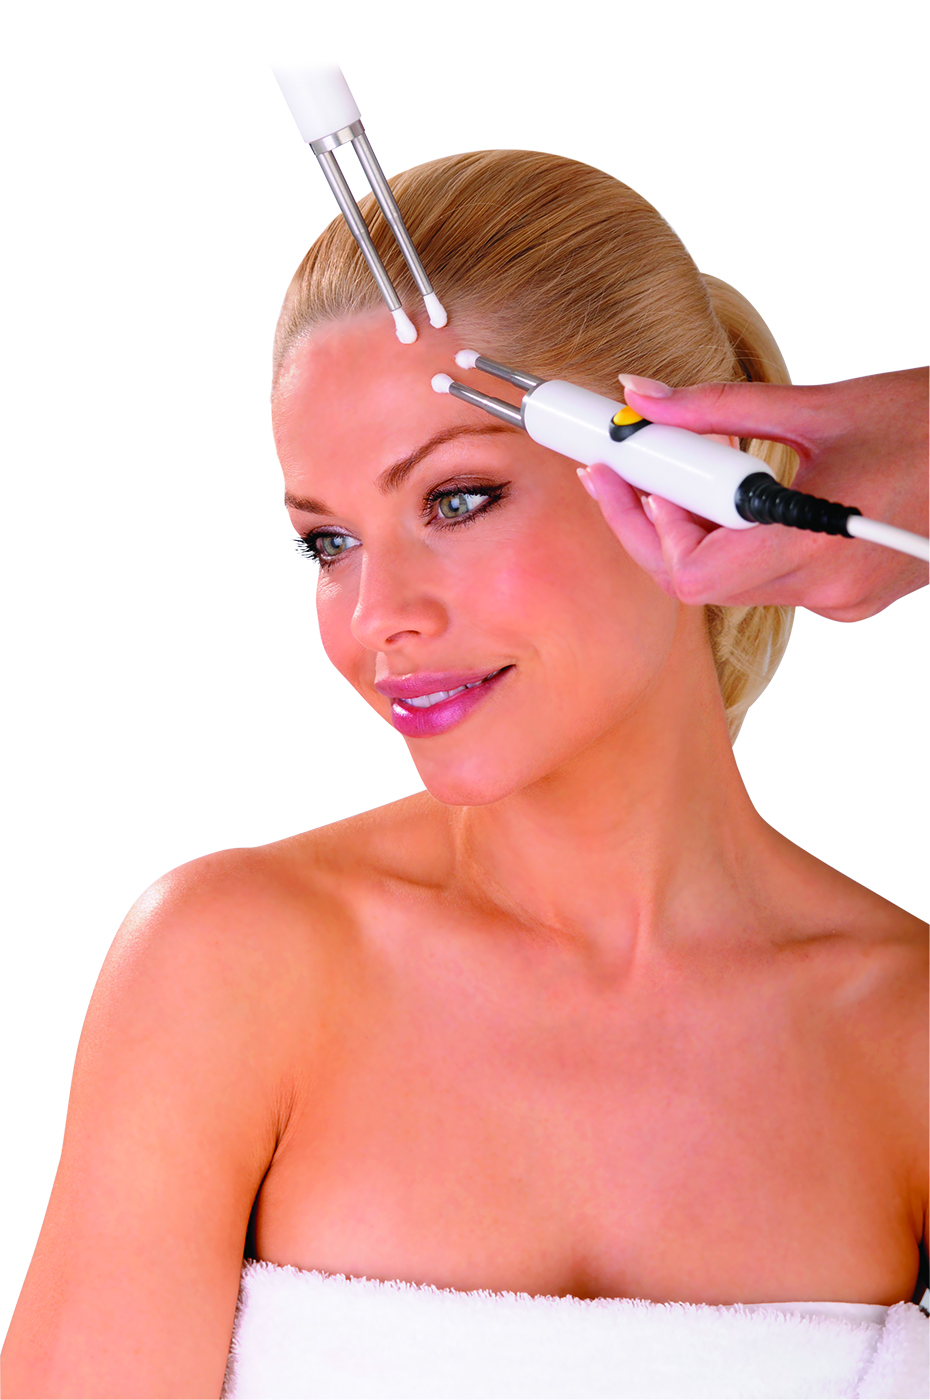 I love having a Caci with Nicki, my skin always looks and feels great. I also use the Environ range of skincare, nothing can beat it.